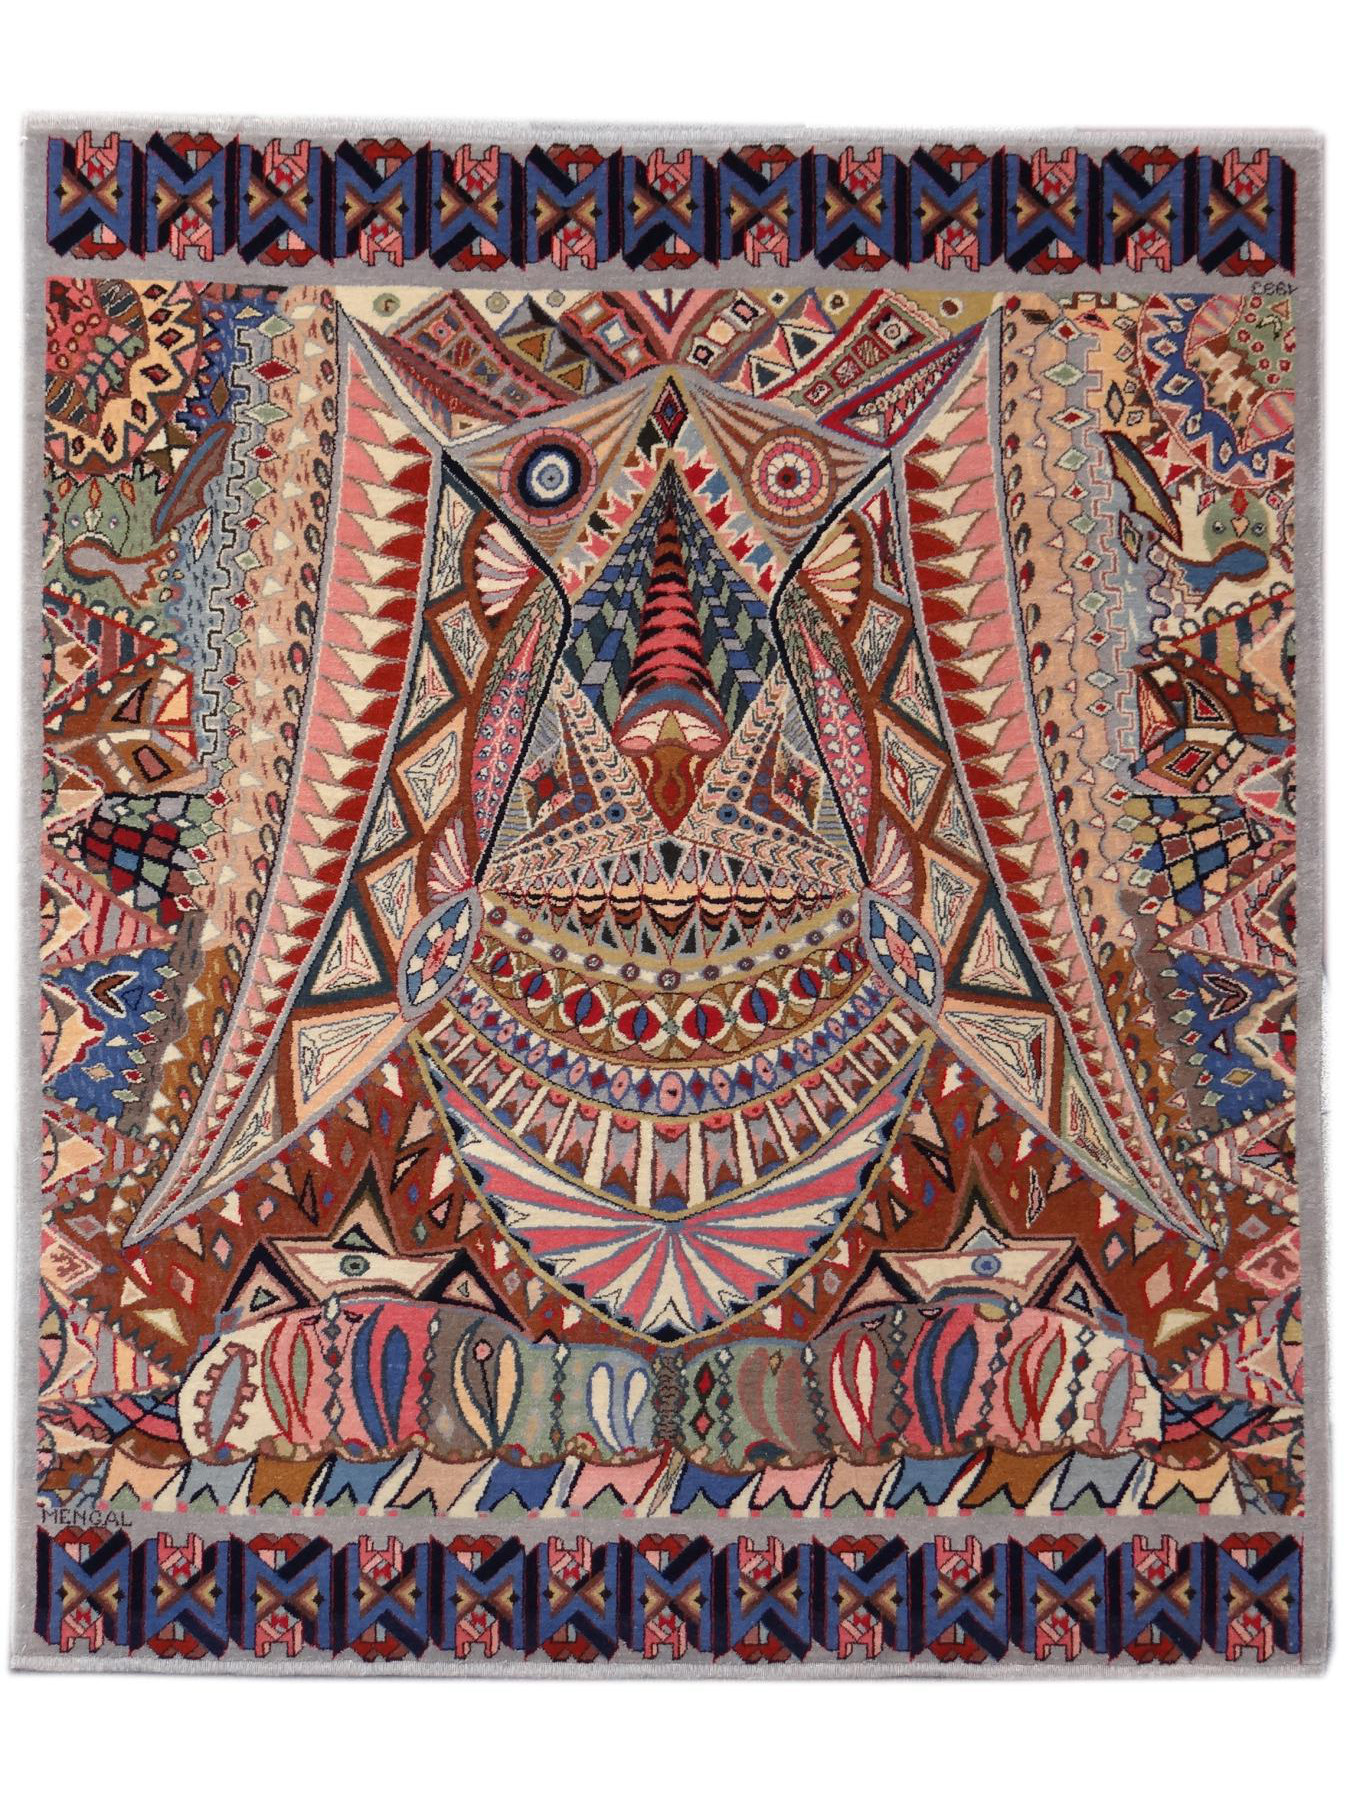 39 Anubis 39 Of Belgian Creation Tapis Luxury N 2178 181x150cm